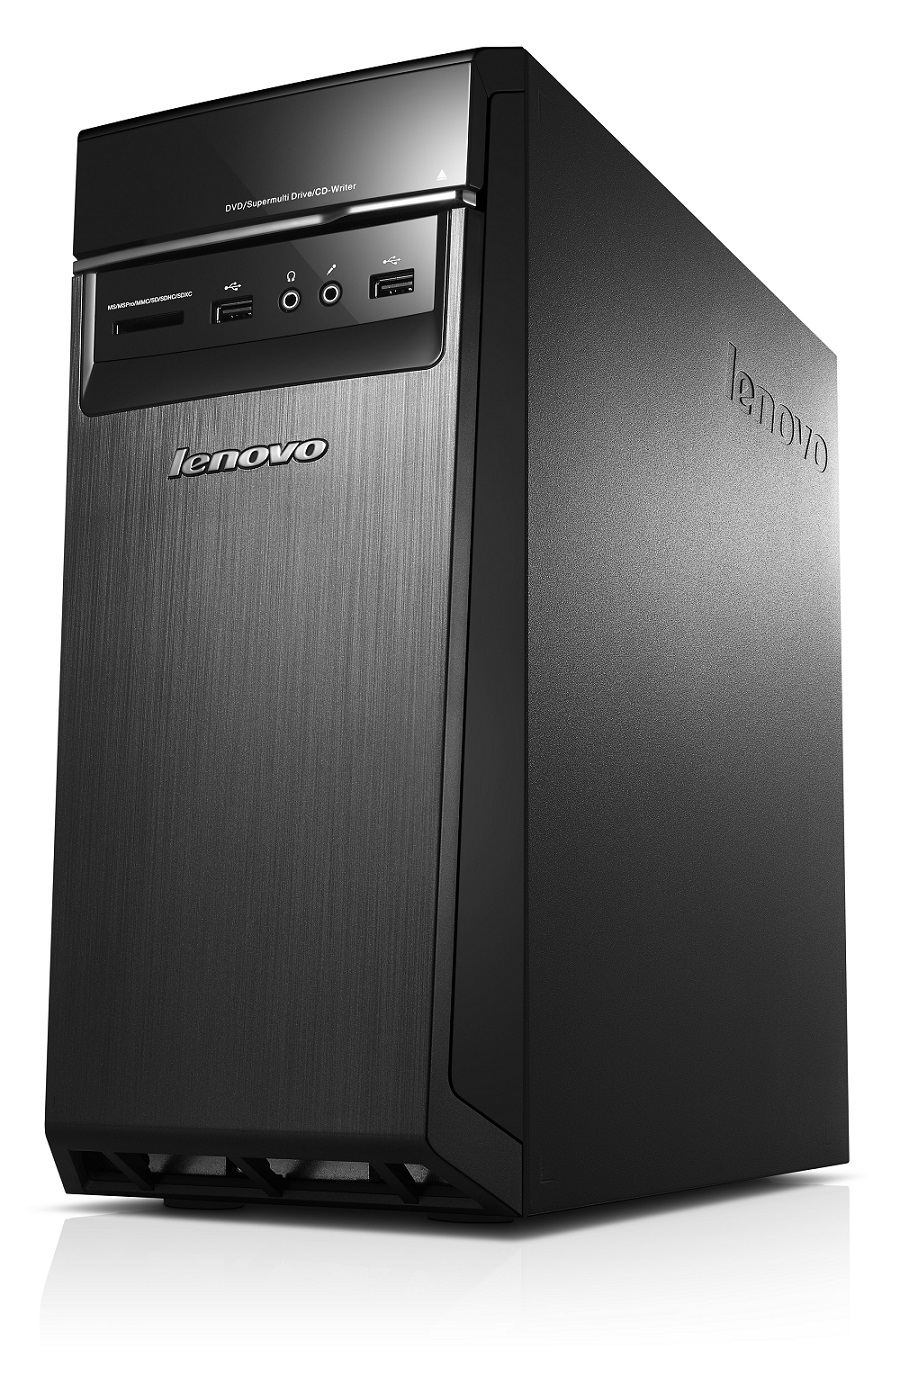 Lenovo DT IdeaCentre H50-55 A10-7800 3.90 GHz/8GB/SSHD 1TB+8GB/GeForce 2GB/DVD-RW/tower 20l/WIN10 90BF004ACK